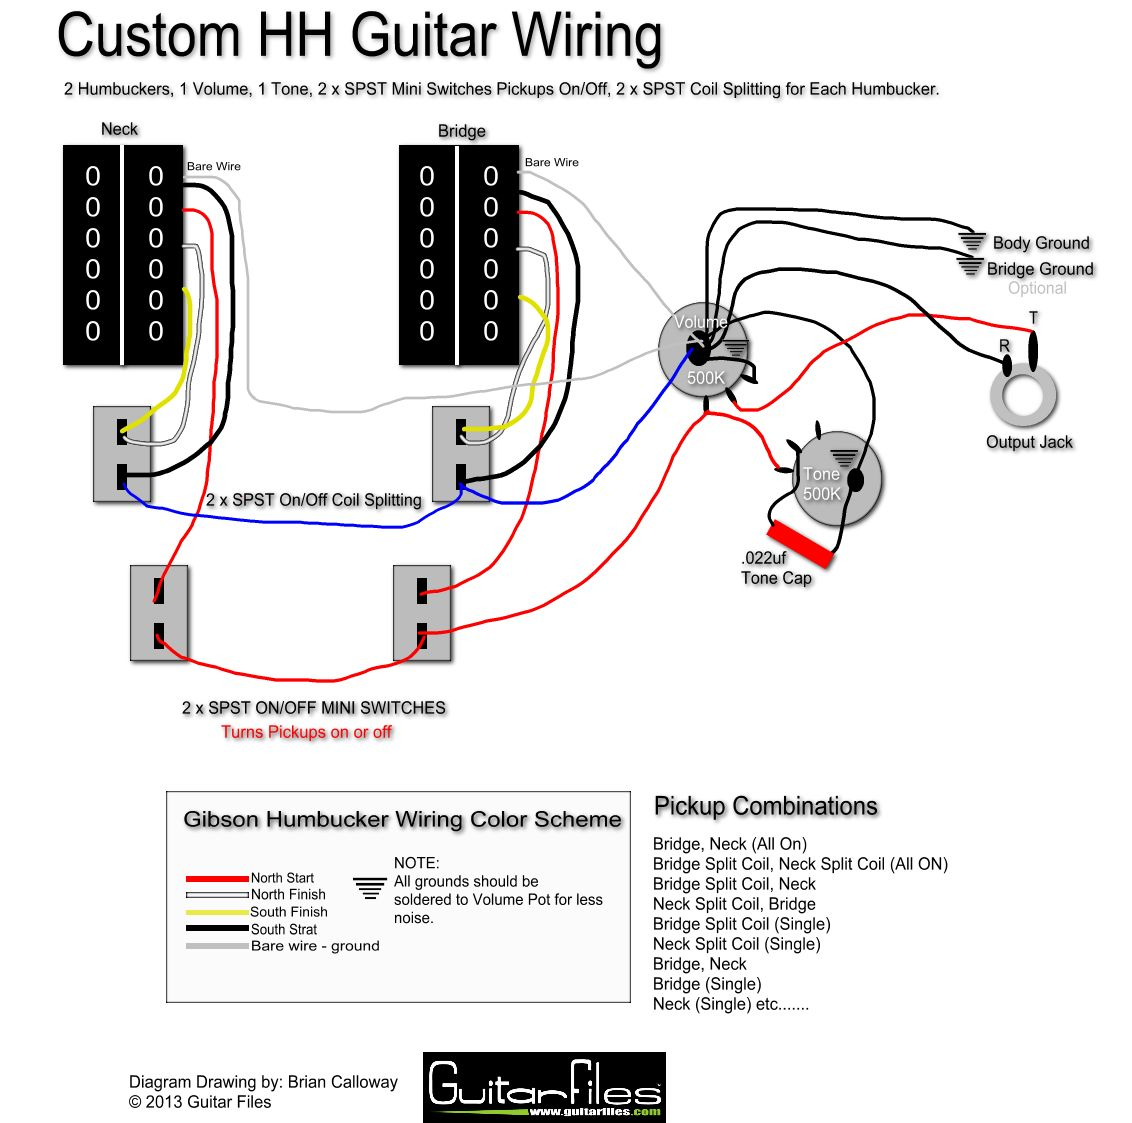 custom hh wiring diagram with spst coil splitting and spst switching guitar tech pinterest. Black Bedroom Furniture Sets. Home Design Ideas